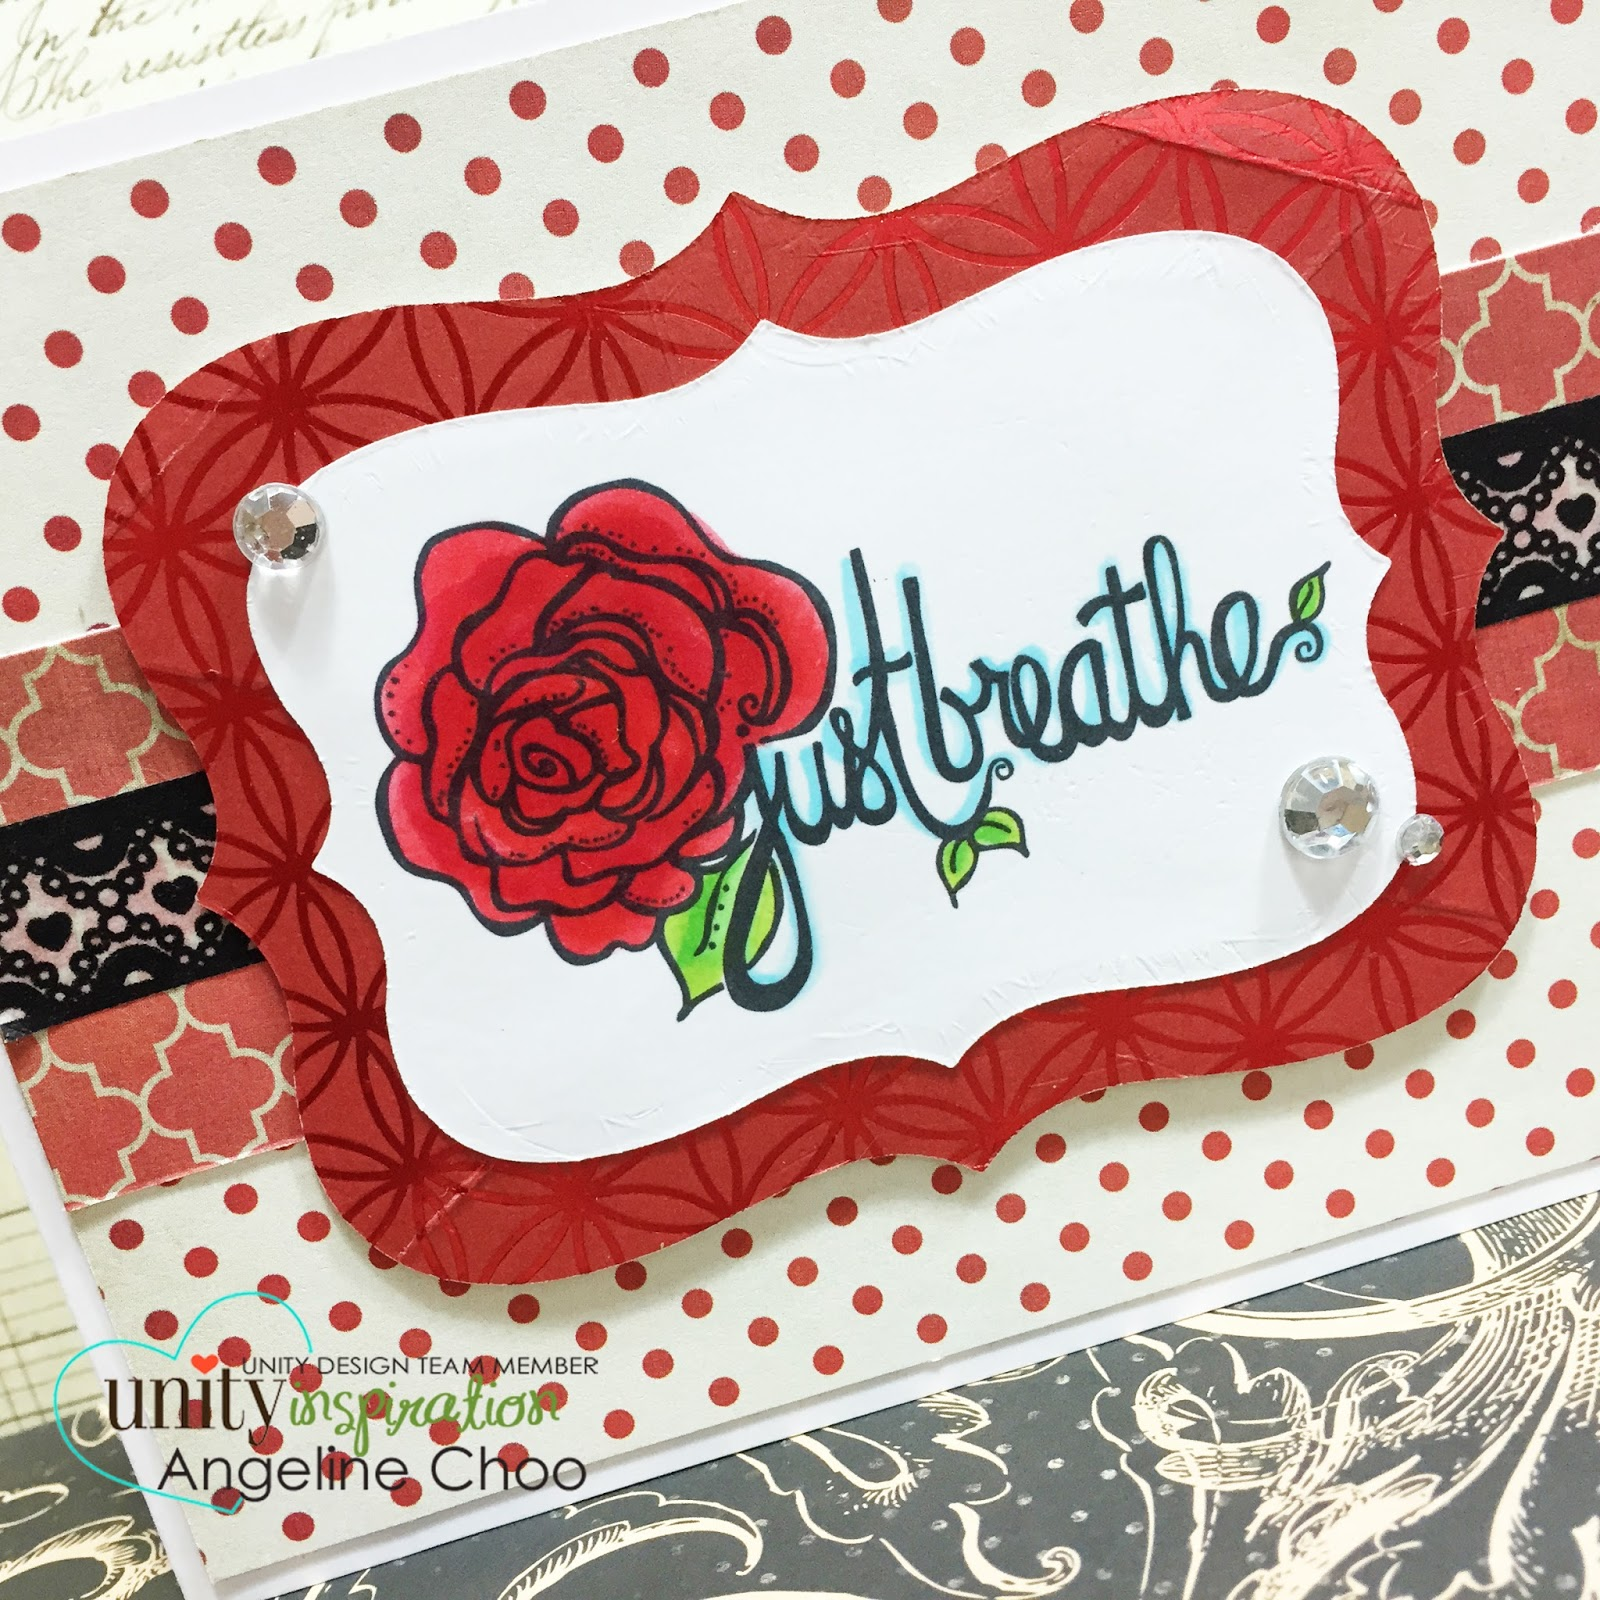 ScrappyScrappy: Just breathe #scrappyscrappy #unitystamp #card #washitape #copic